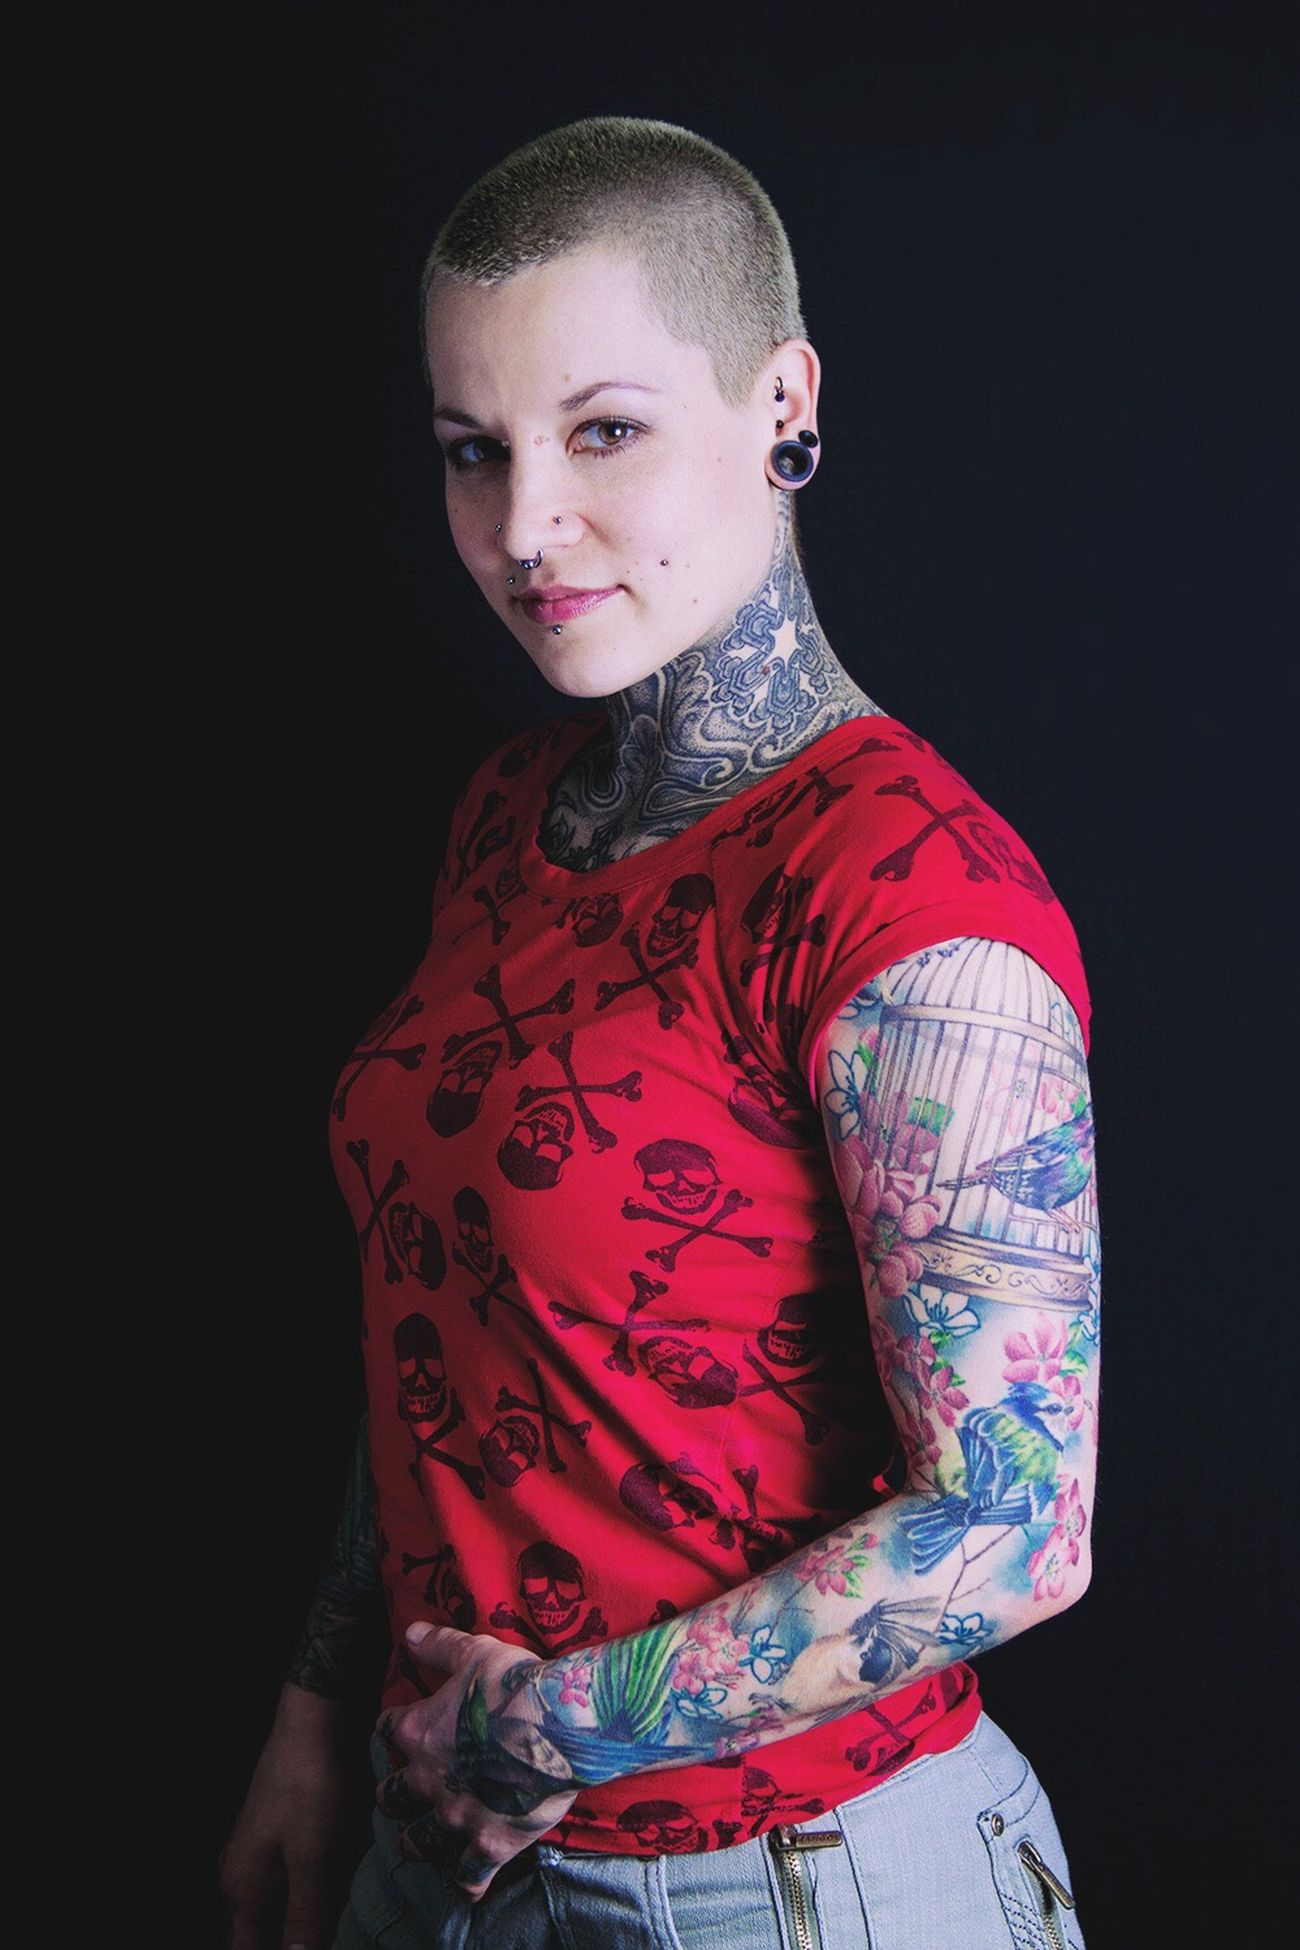 Jackie, tattoo artist, piercer, roller derby player/coach Portrait Of A Woman Tattooed